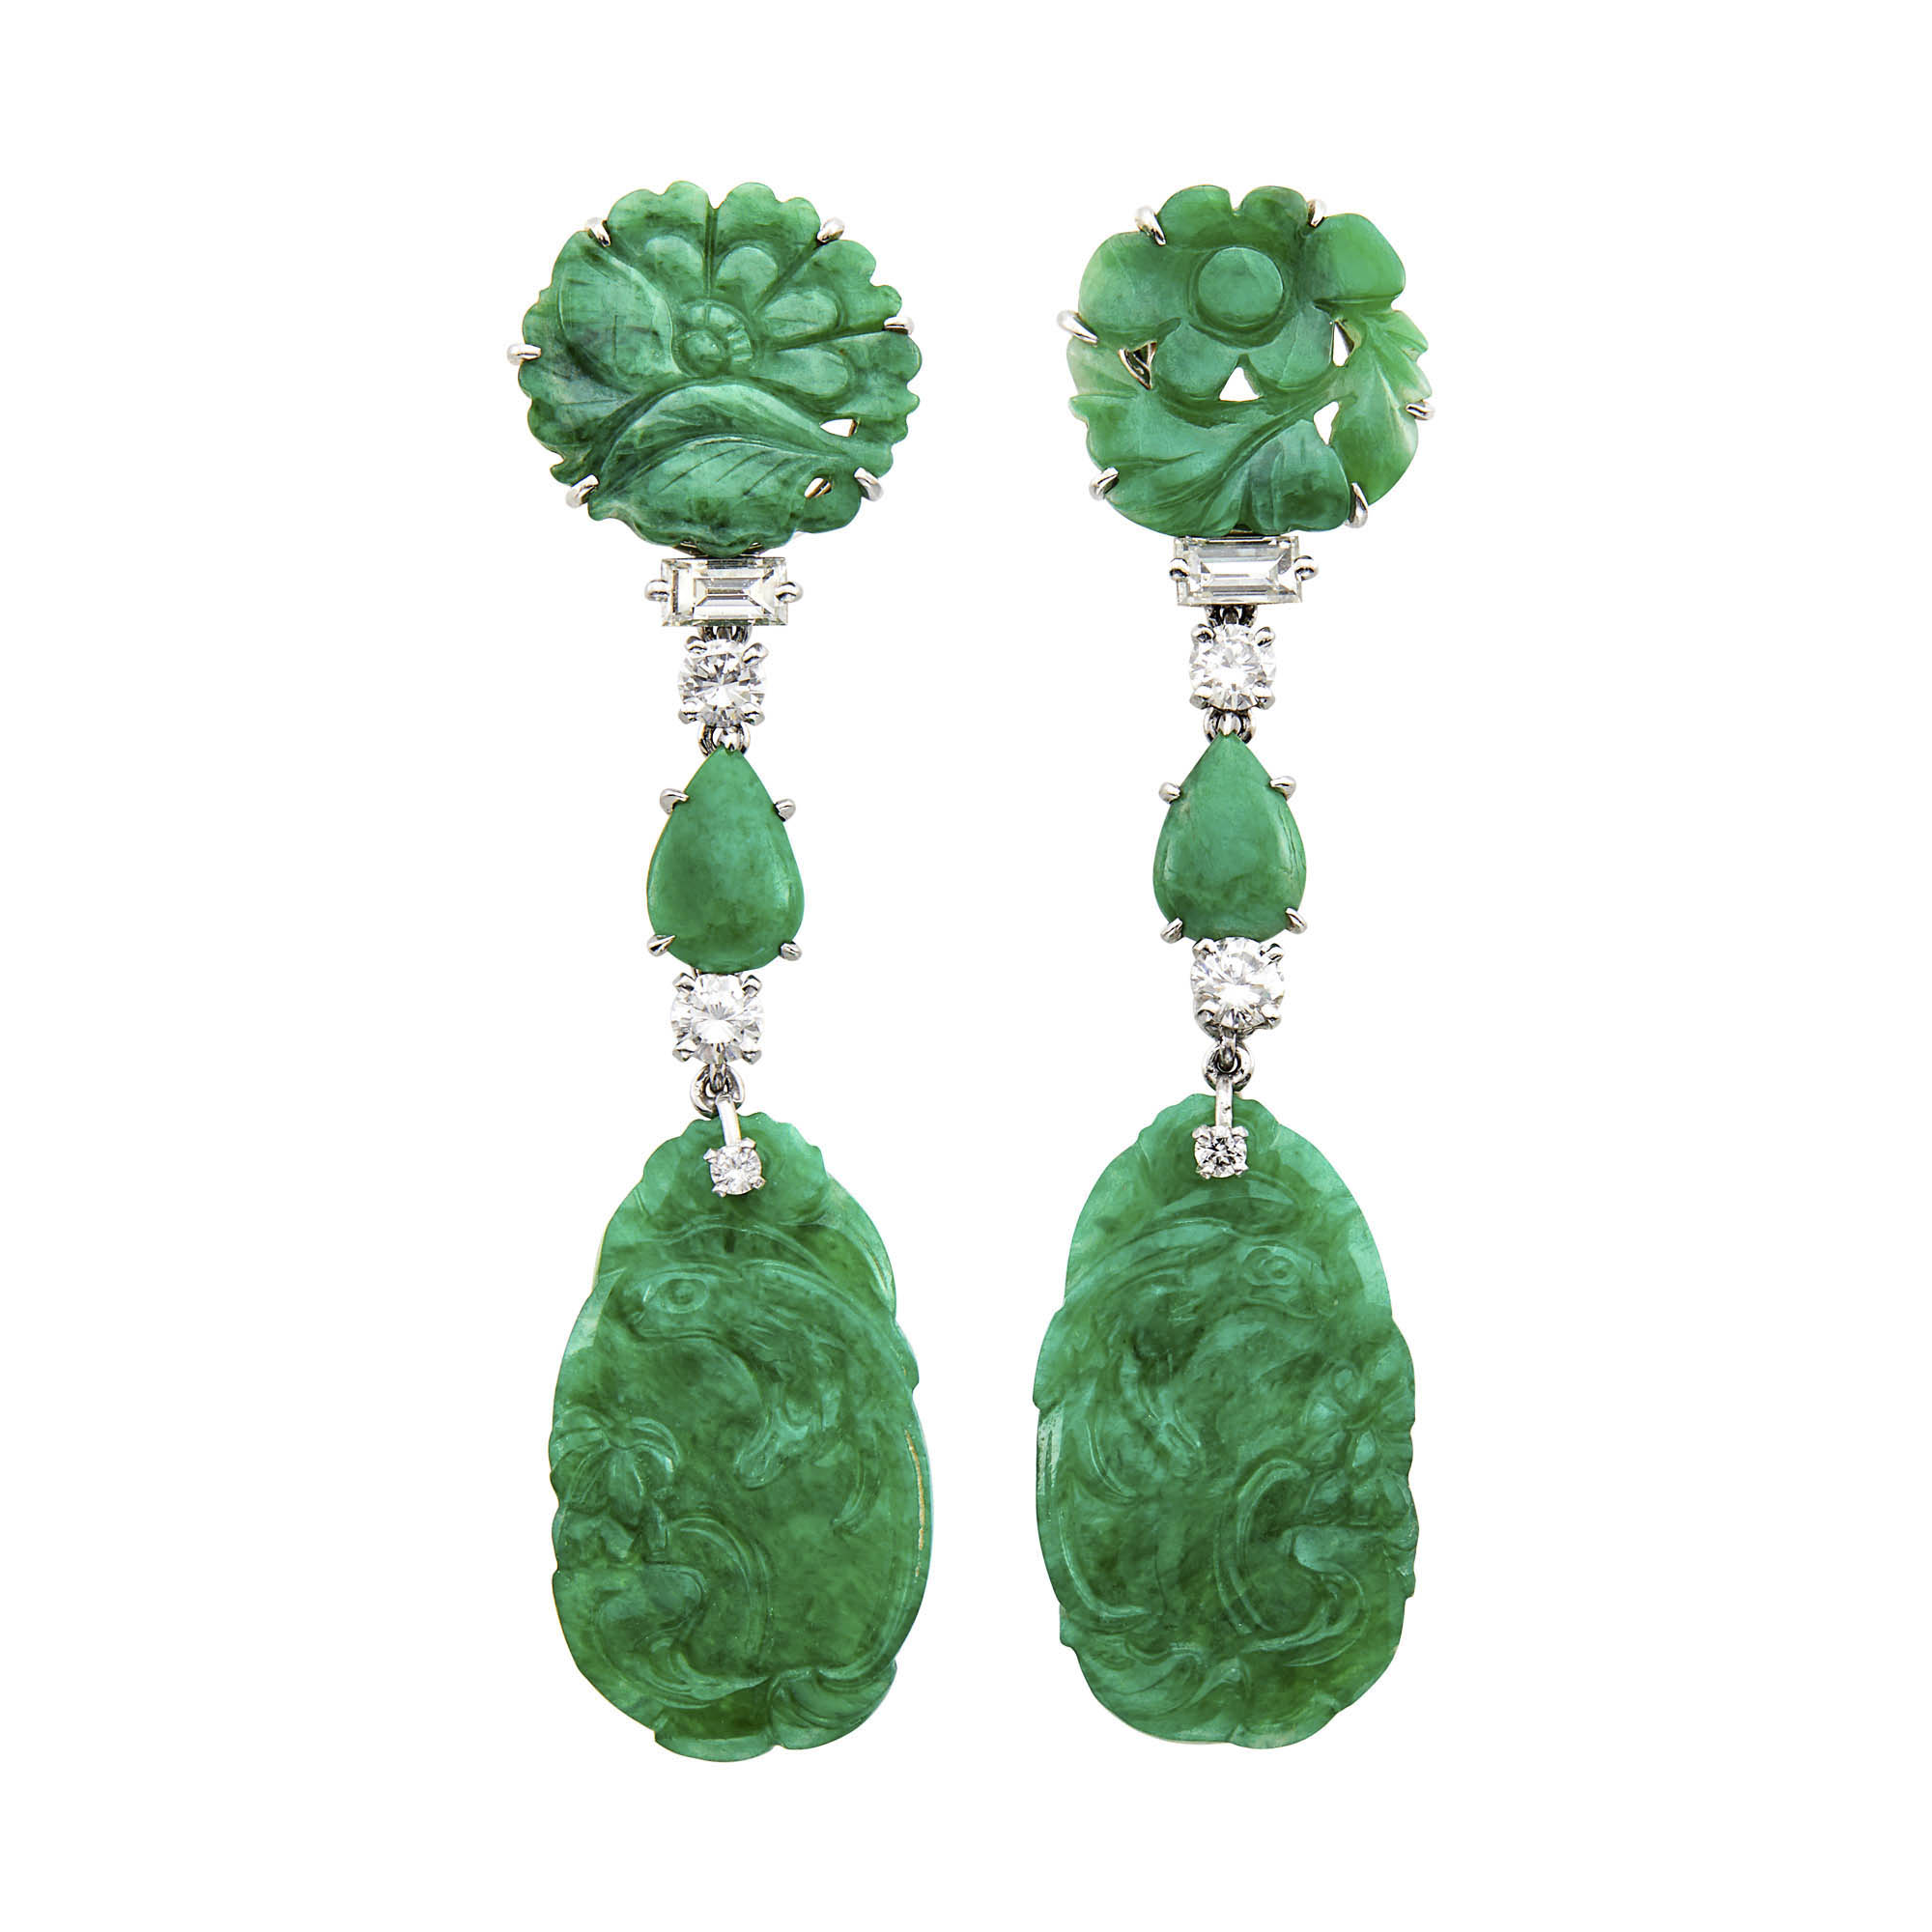 Lot image - Pair of Platinum, Carved Jade and Diamond Pendant-Earclips